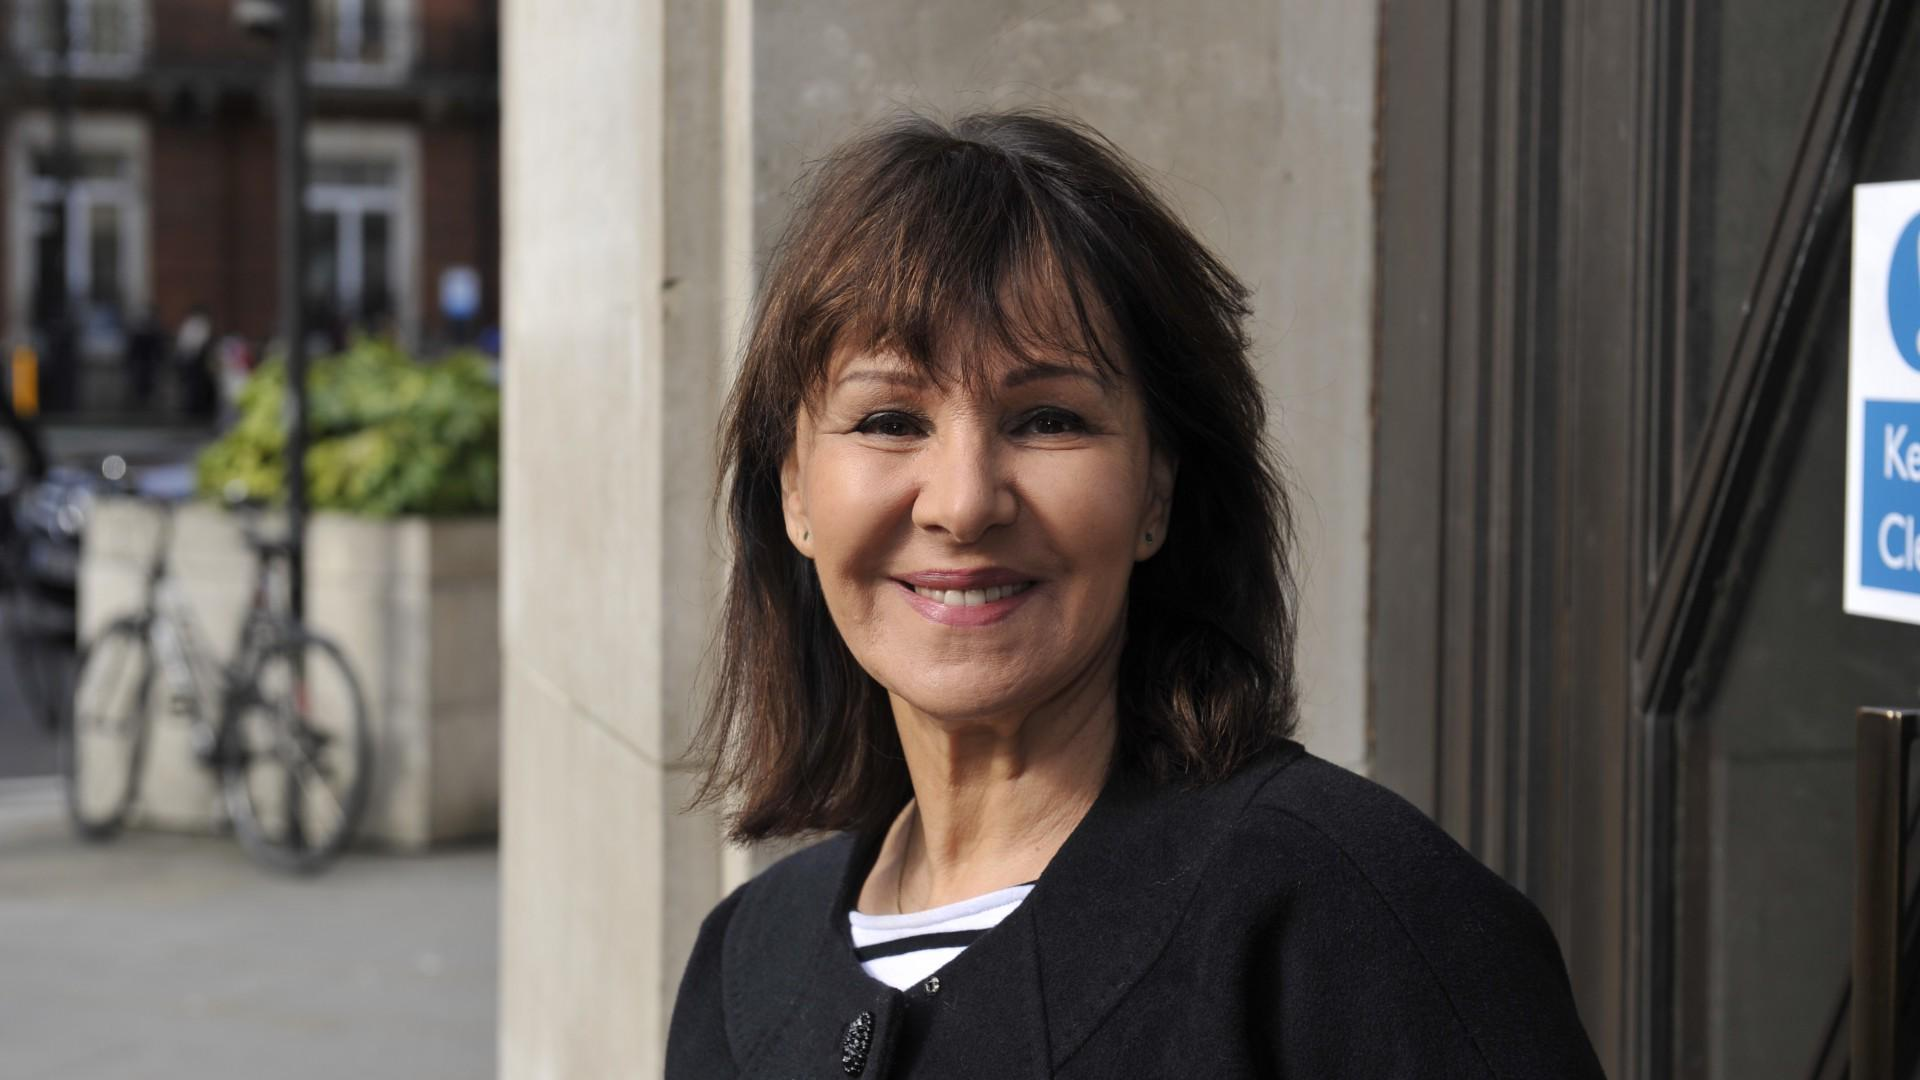 RT @BBCWiT: We're digging the dancing queen @arlenephillips! Hear her on @BBCRadio4 on Sat at 6:15pm: http://t.co/dfR8eadw85 http://t.co/rk…